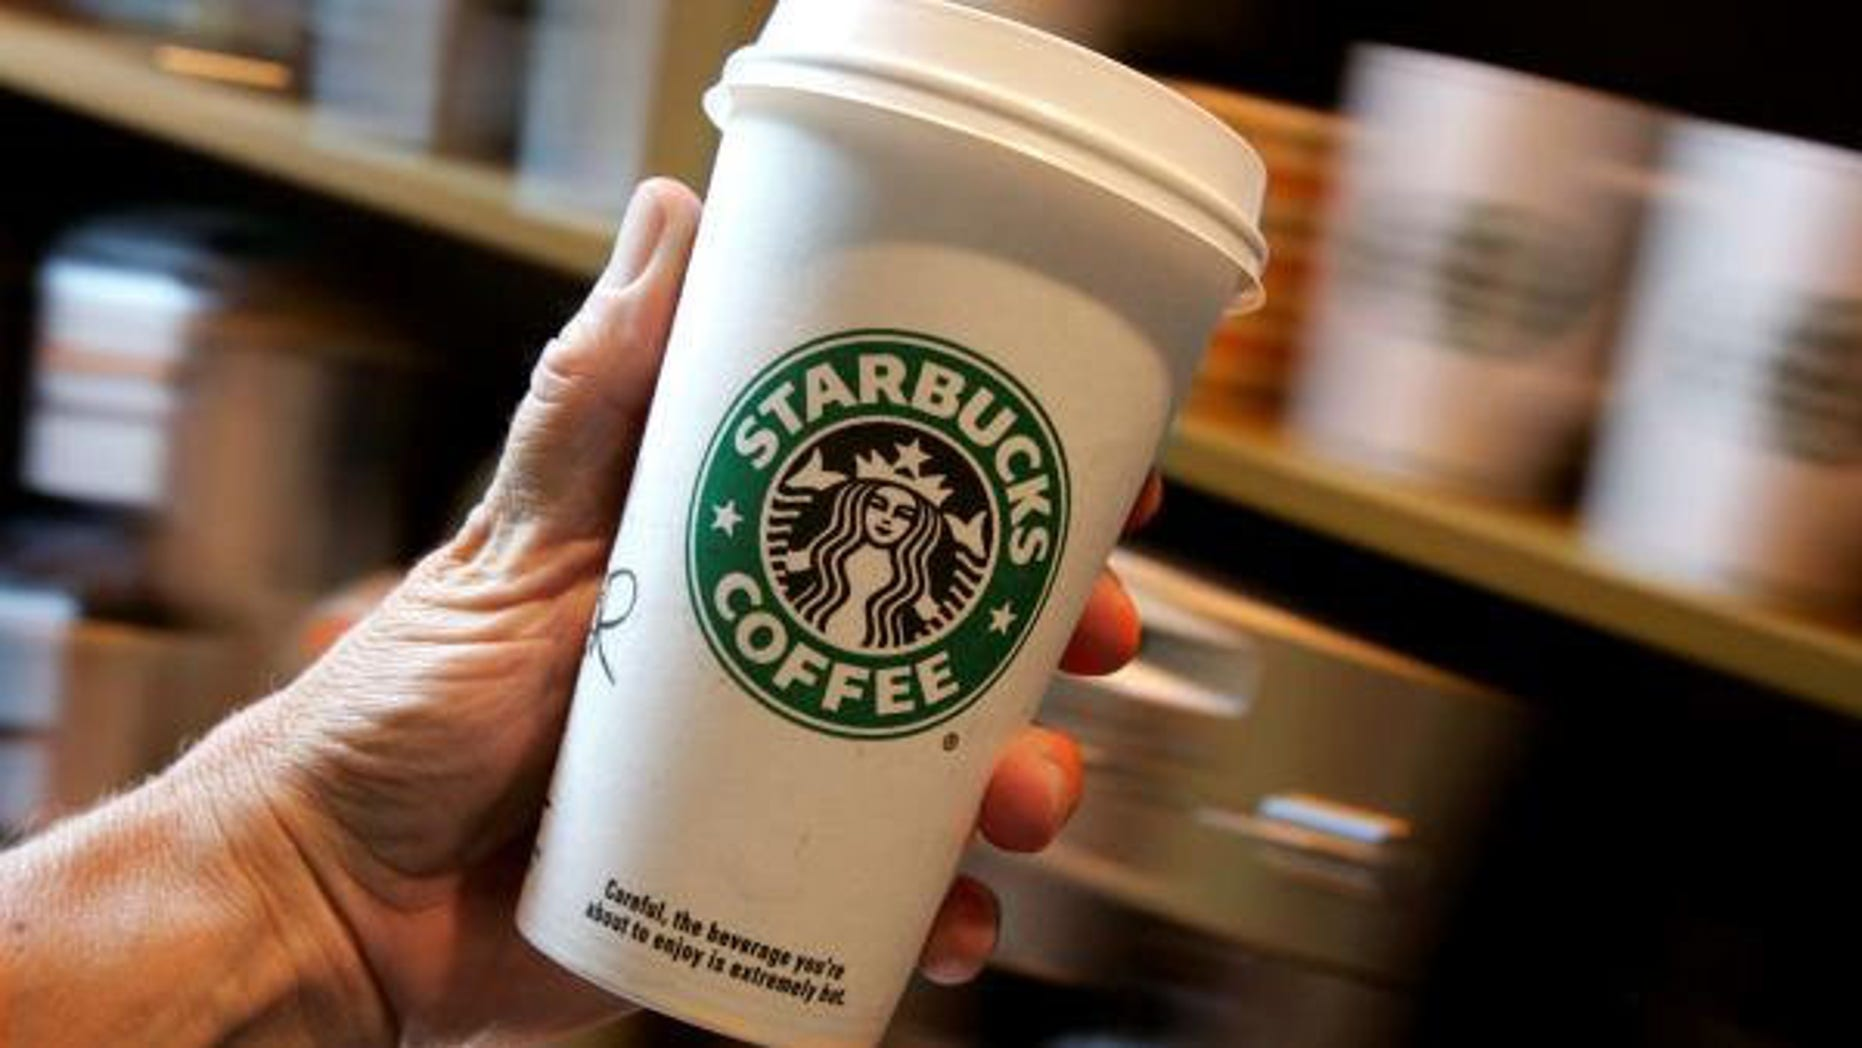 Some Starbucks' customers are angry that the company would charge extra for few flavor shots and soymilk — particularly those with dietary restrictions.